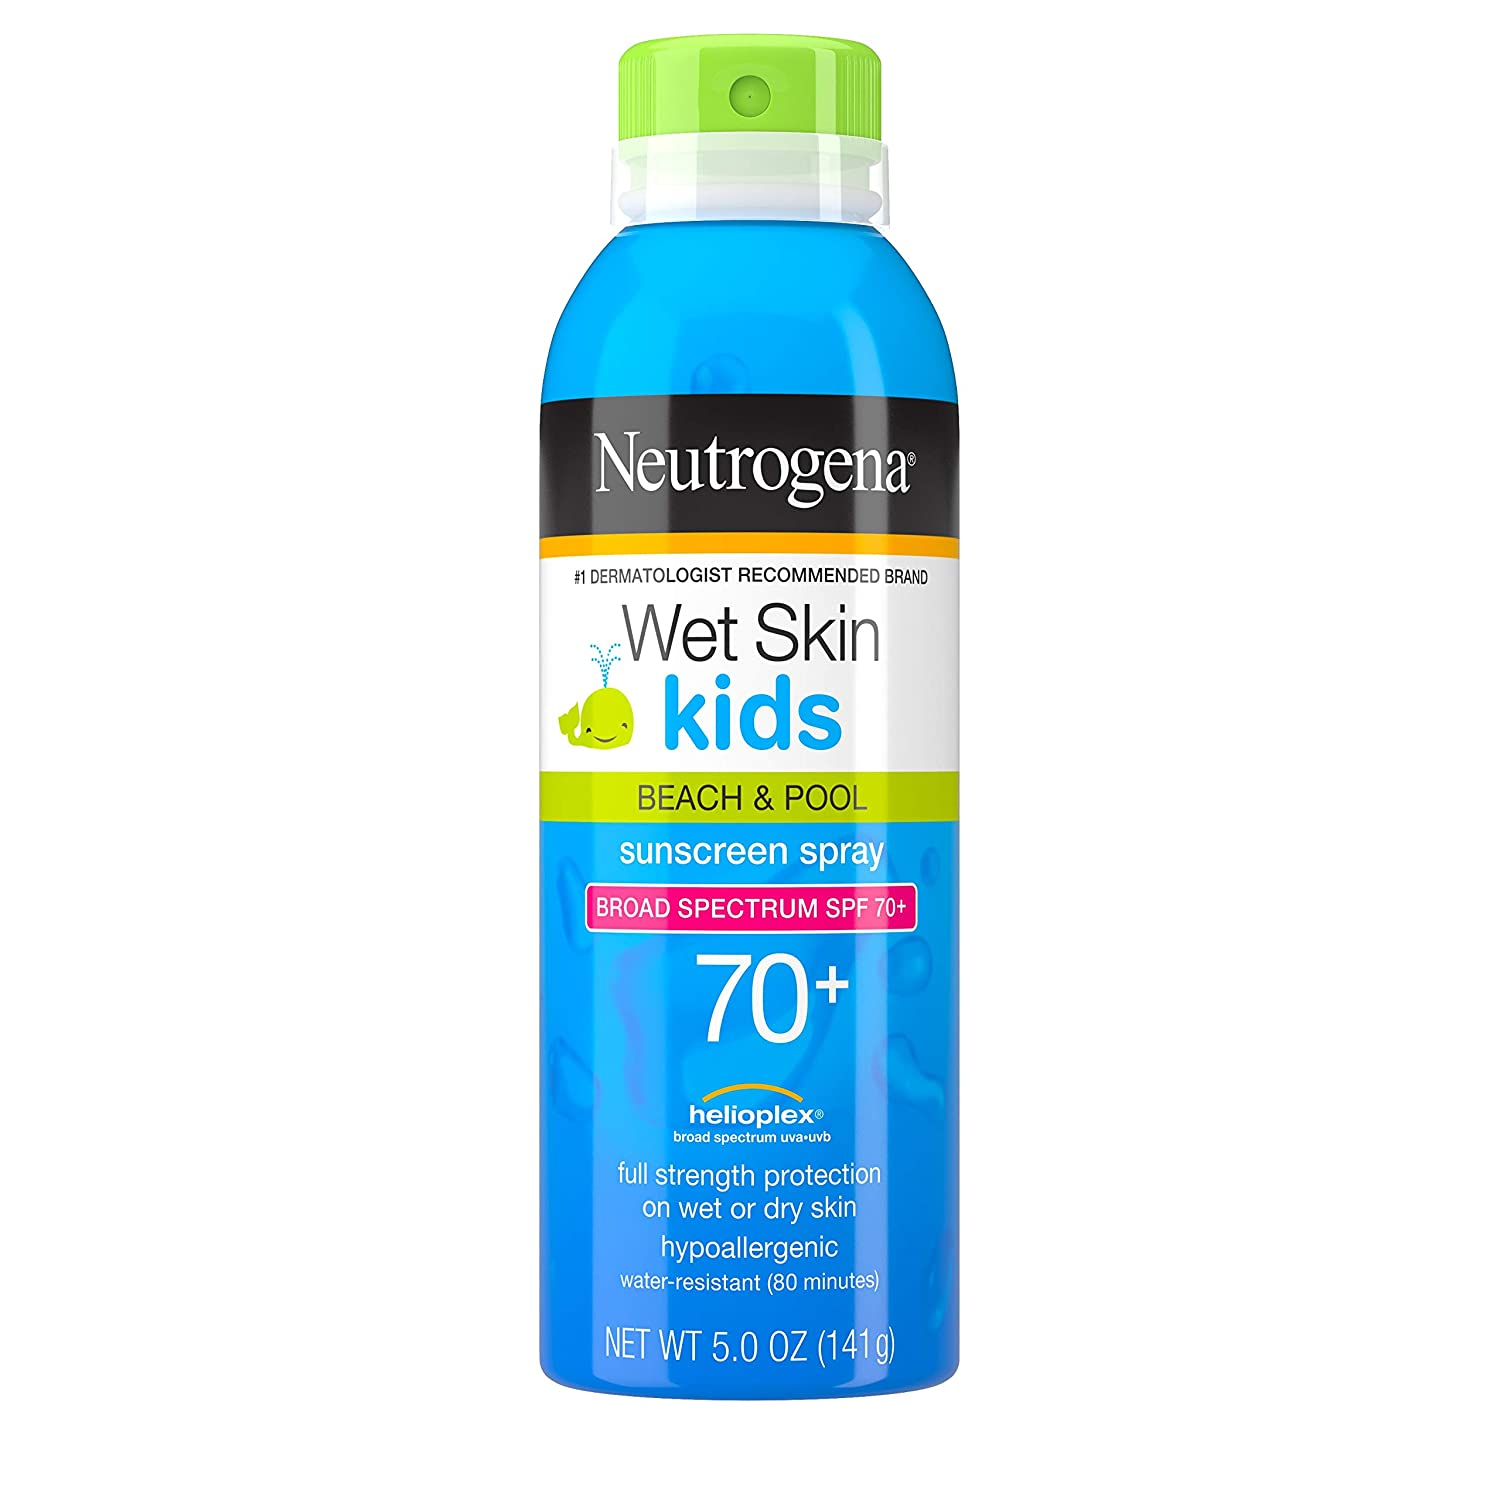 Neutrogena Wet Skin Kids Sunscreen Spray, Water-Resistant and Oil-Free, Broad Spectrum SPF 70+, 5 oz (Pack of 2)